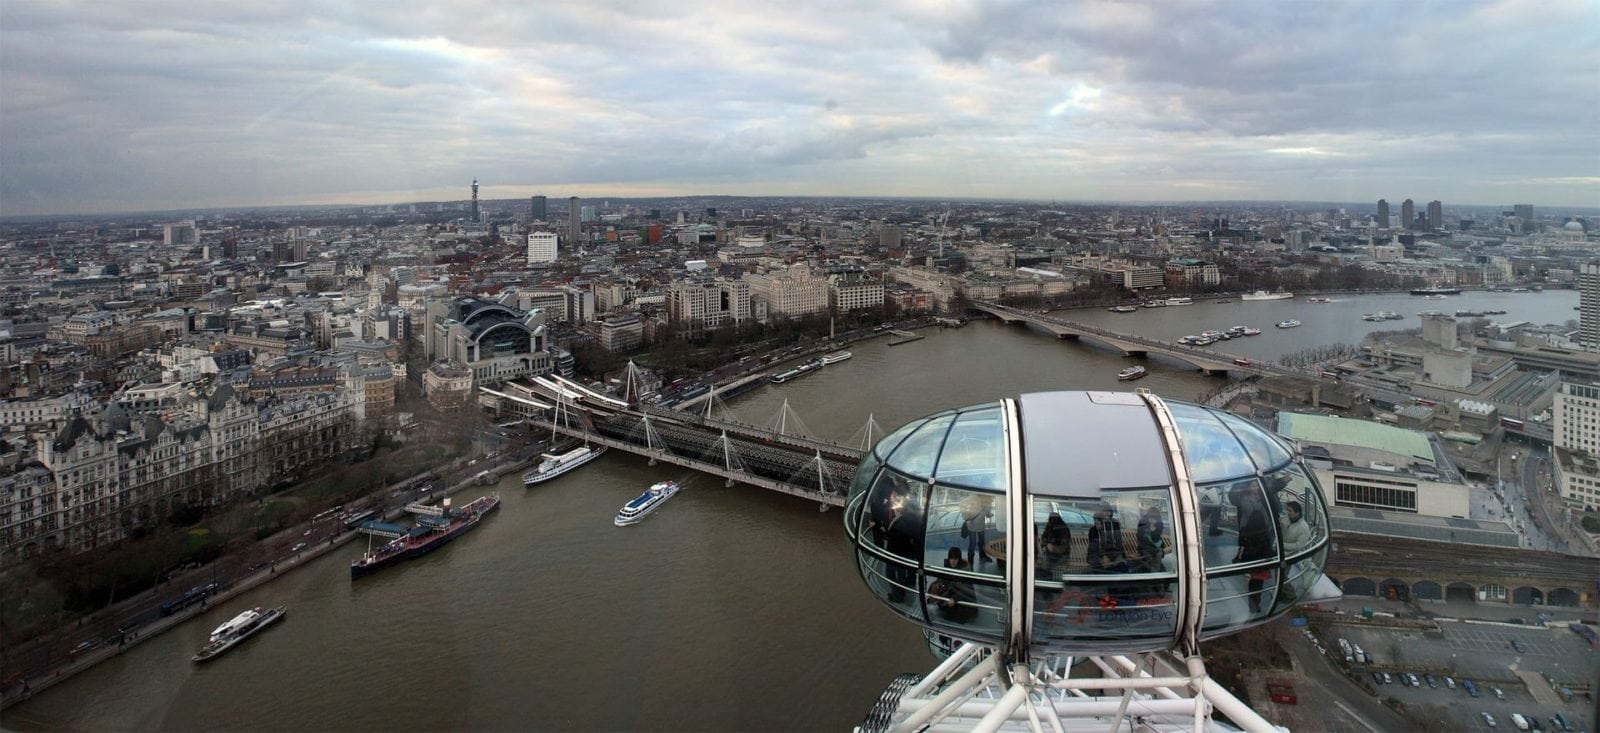 Birds eye view of the London Eye